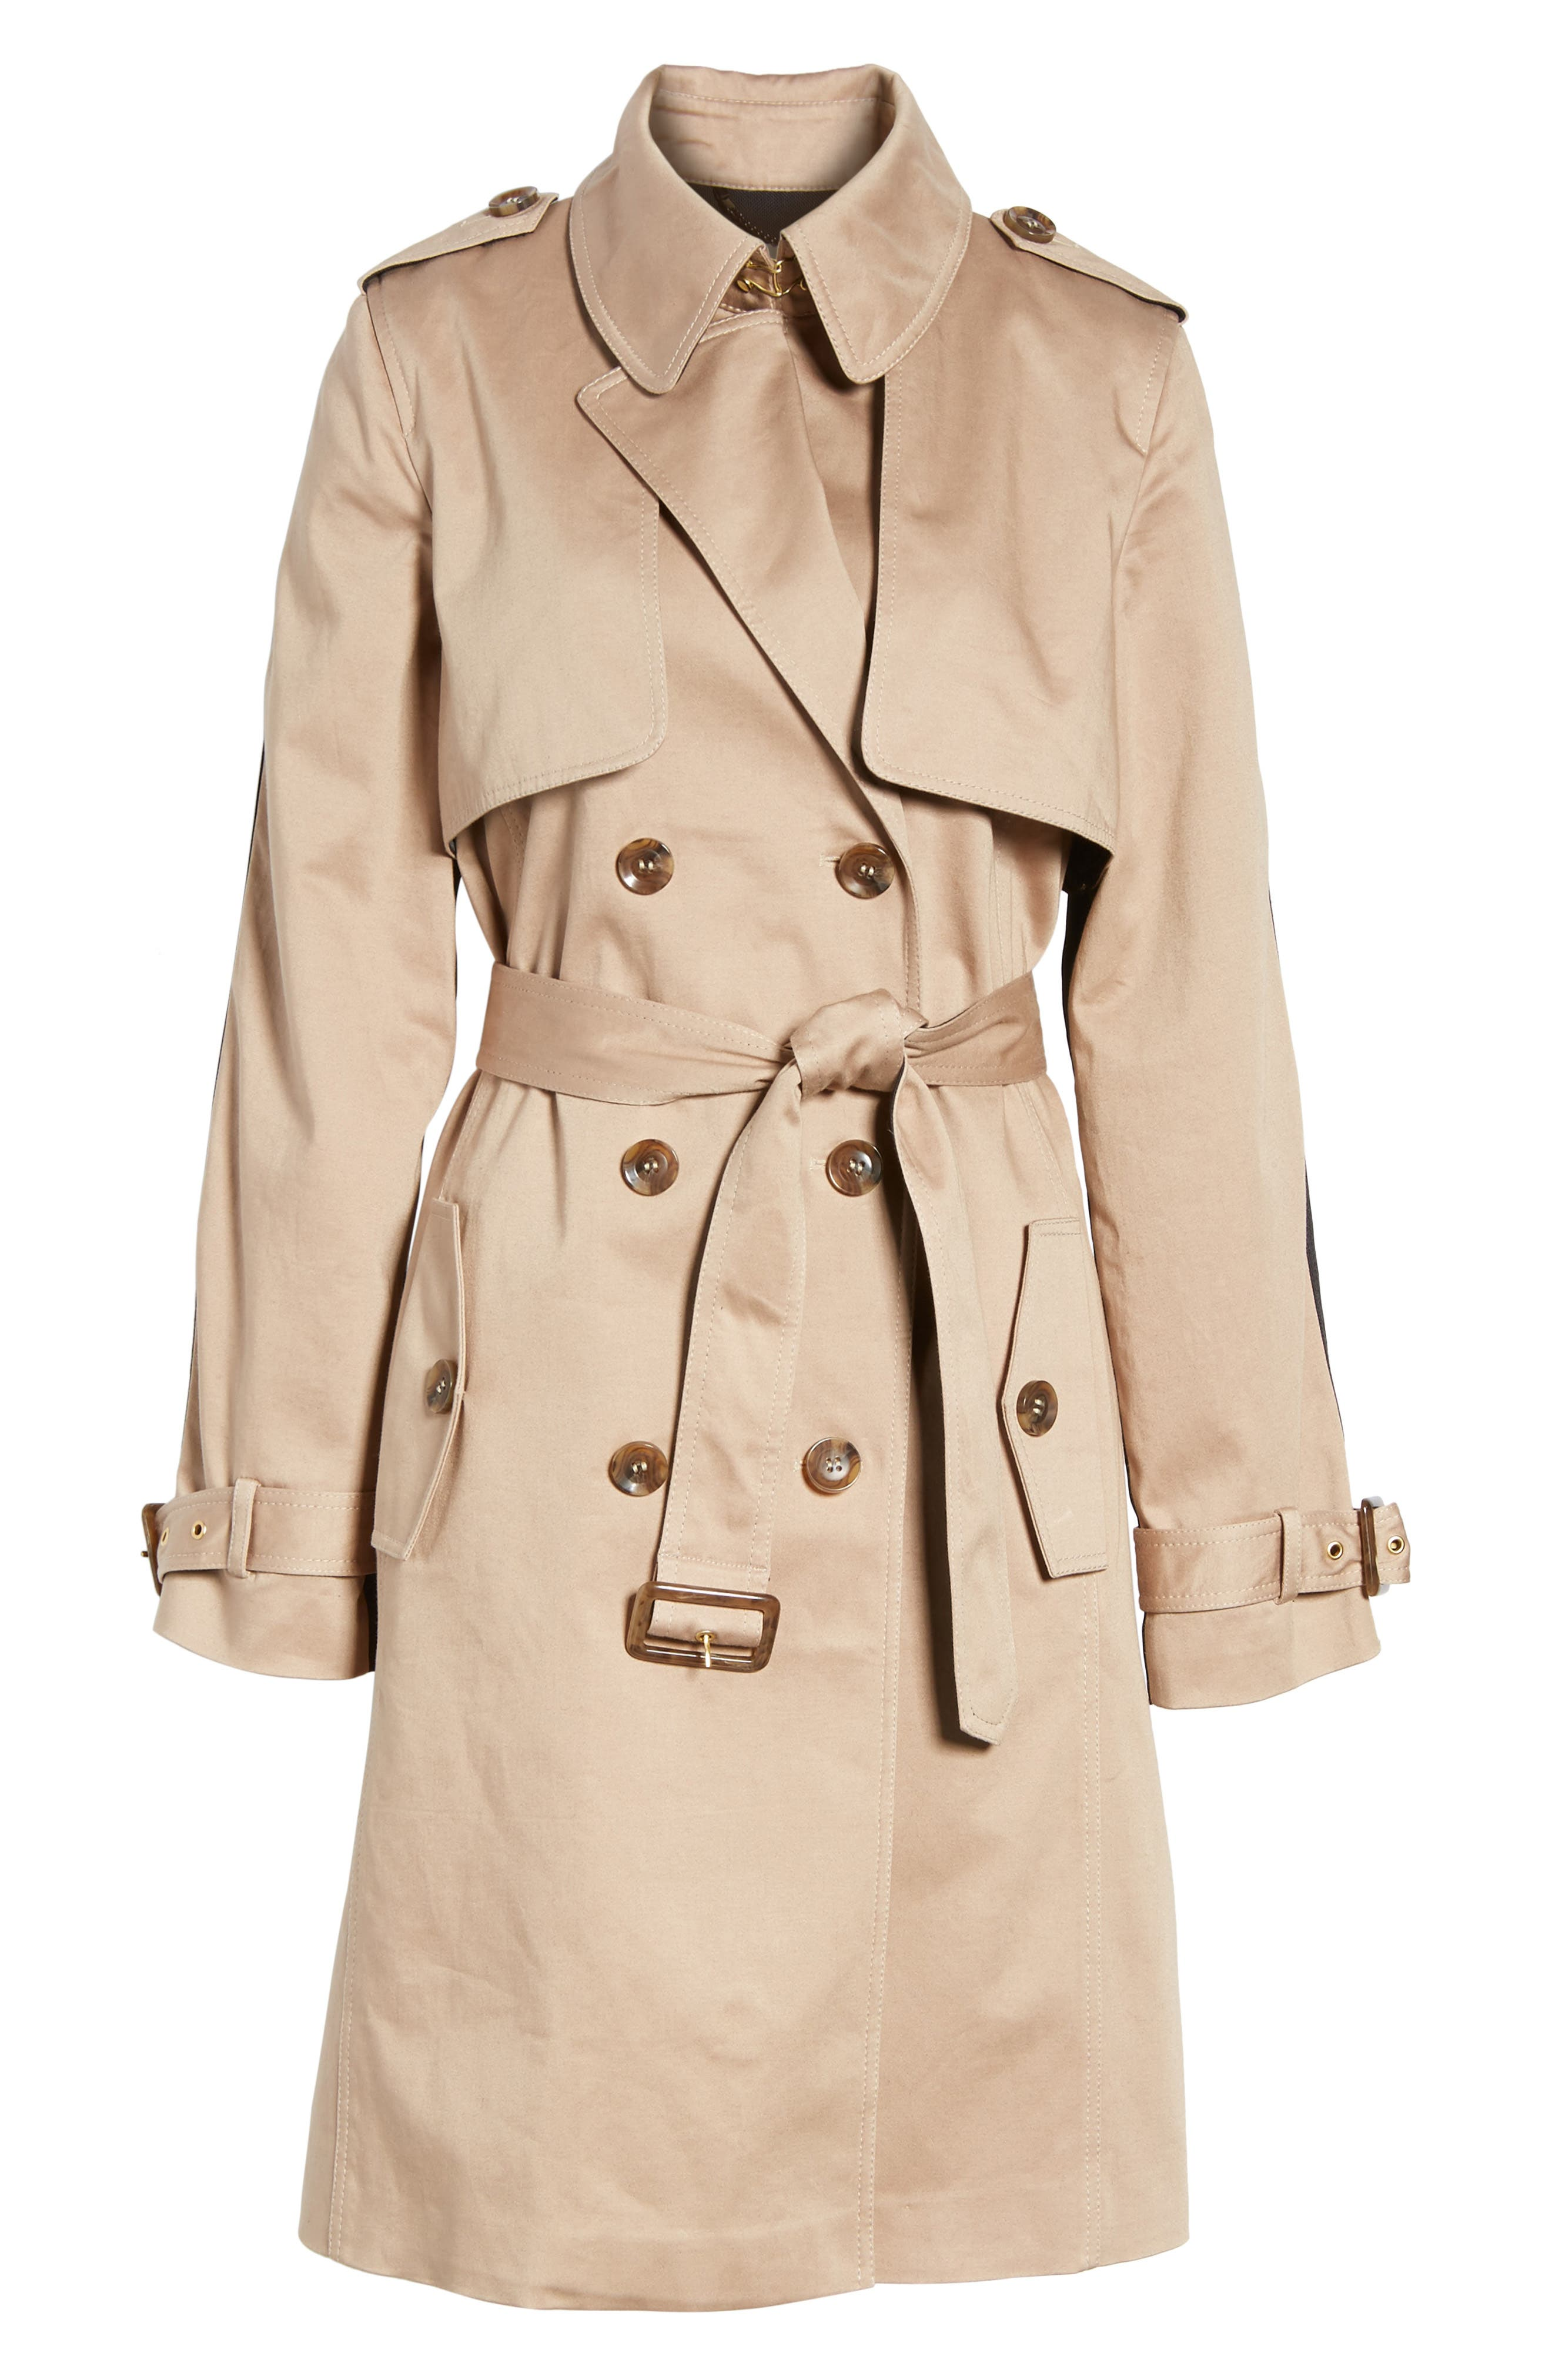 Allison Two-Tone Trench Coat,                             Alternate thumbnail 5, color,                             251